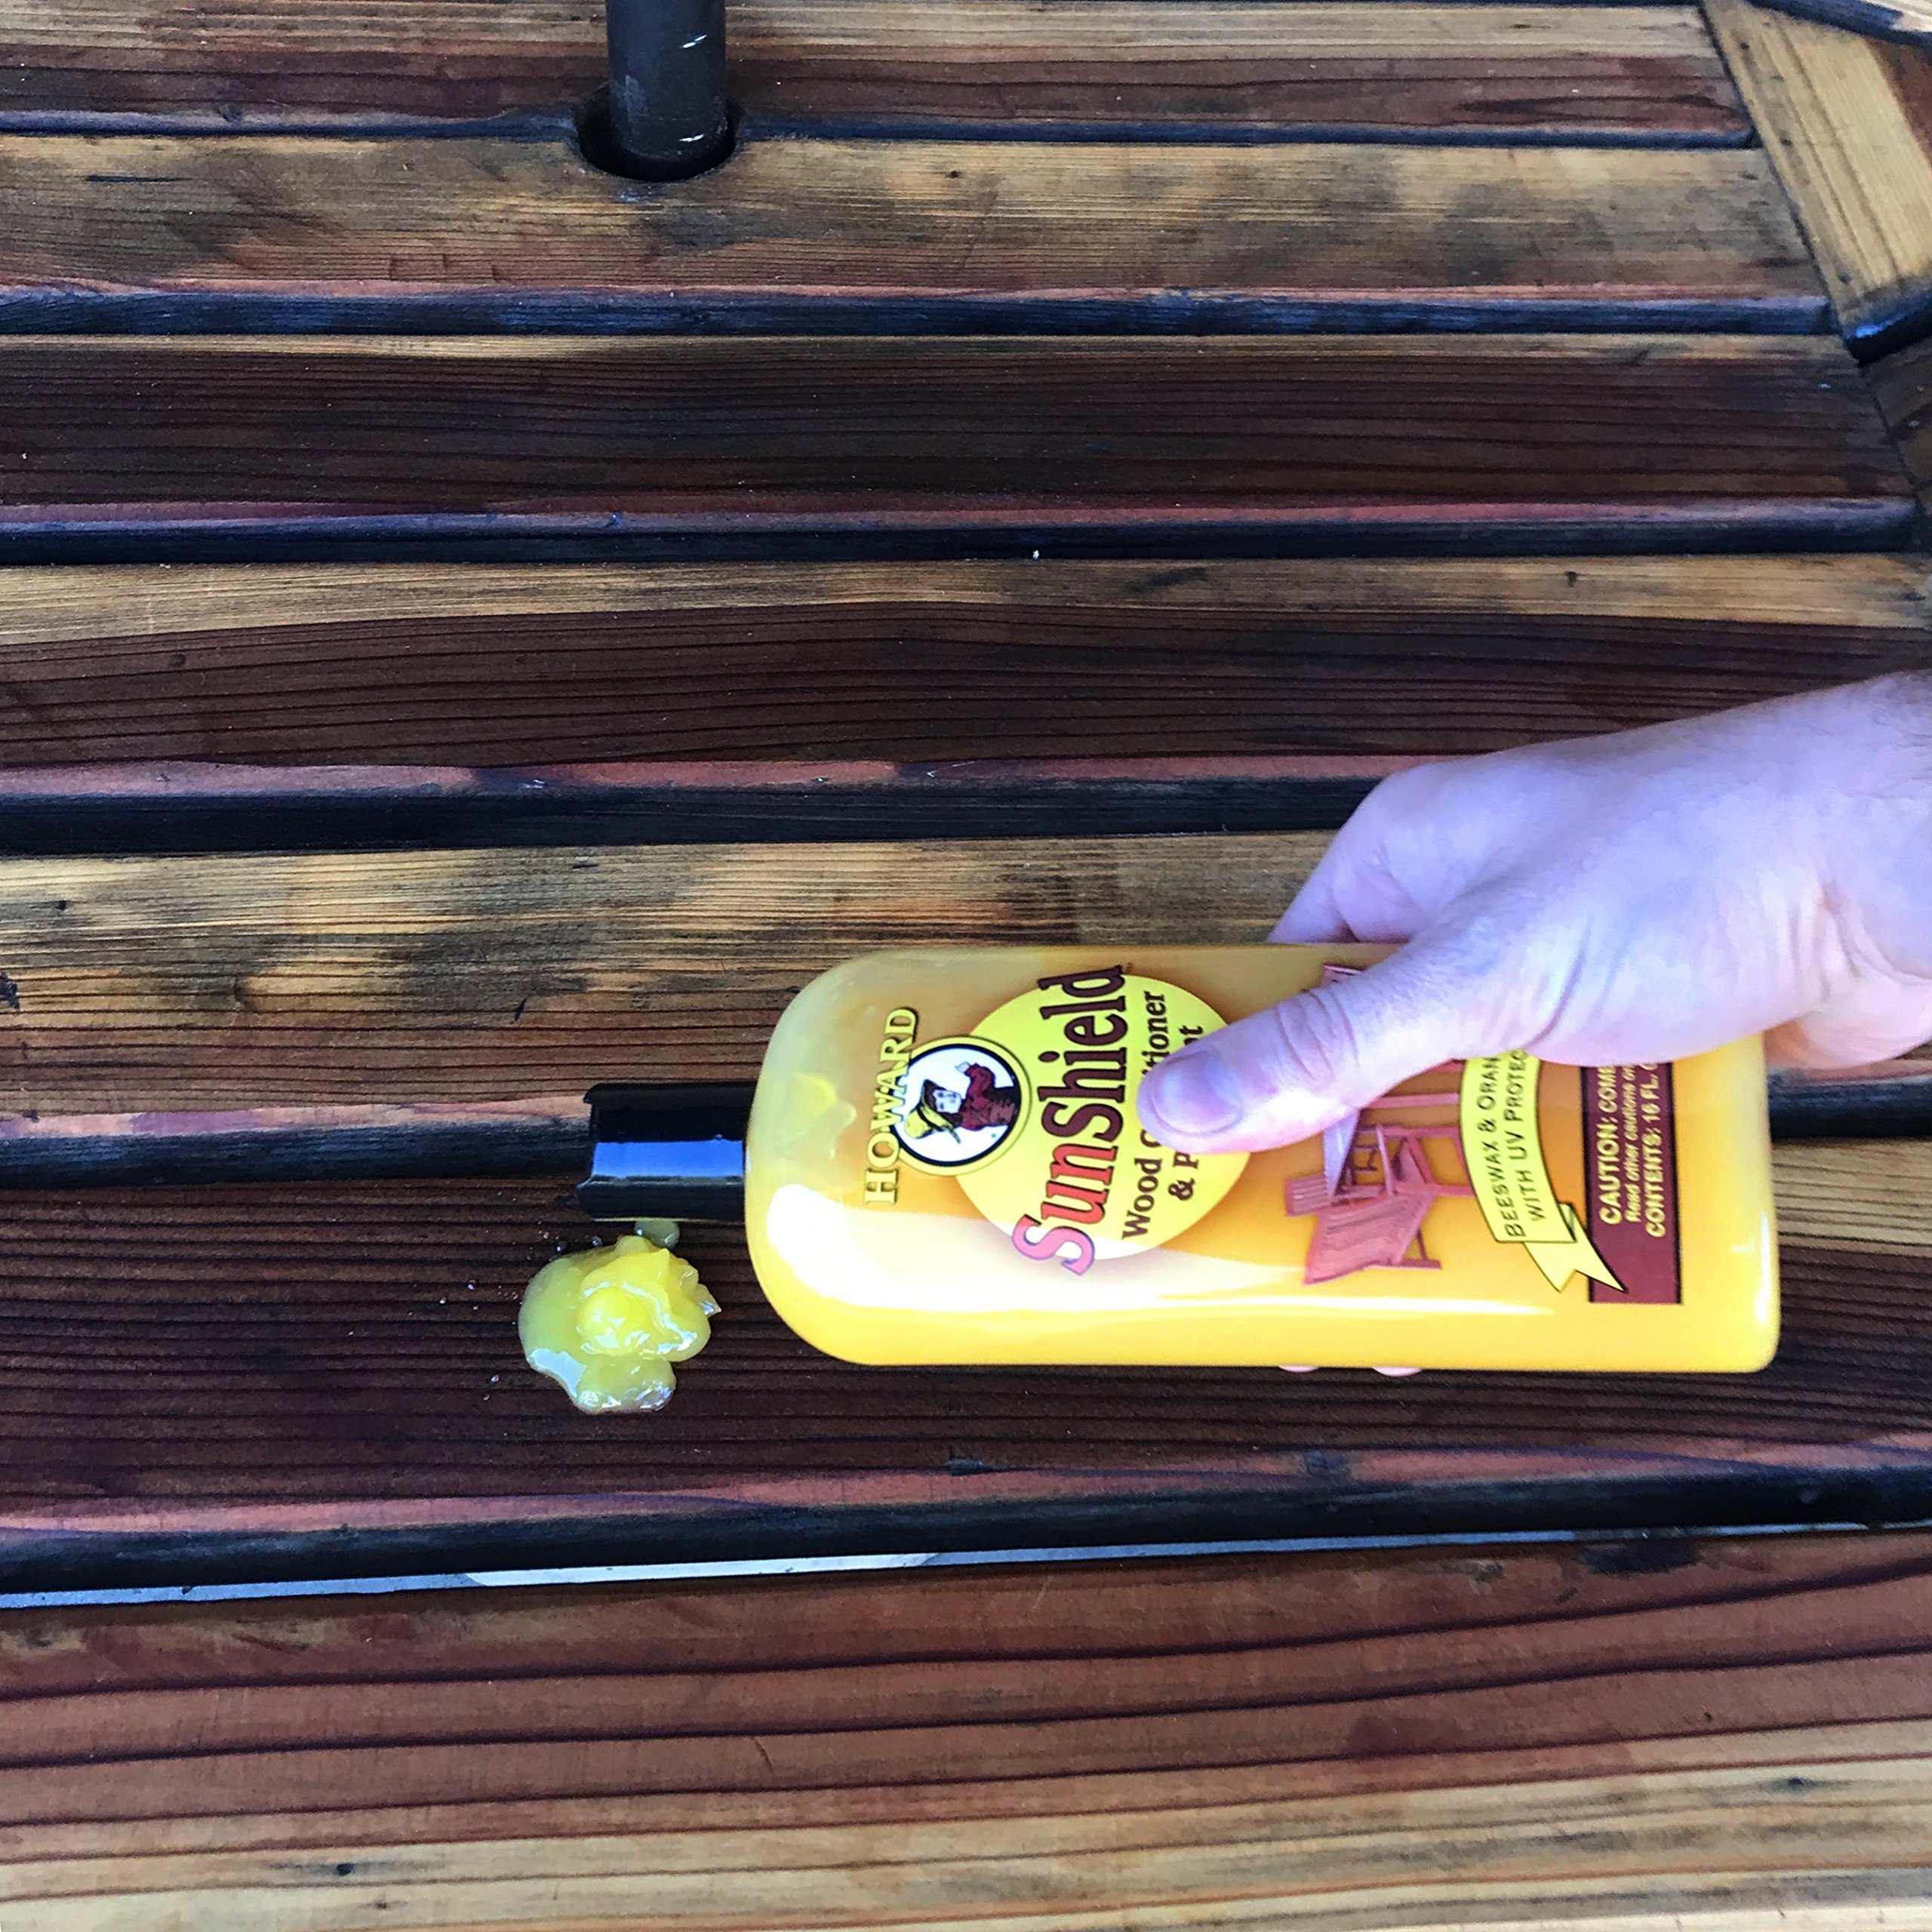 Howard SWAX16 SunShield Outdoor Furniture Wax with UV Protection, 16-Ounce, Yellow by Howard Products (Image #6)